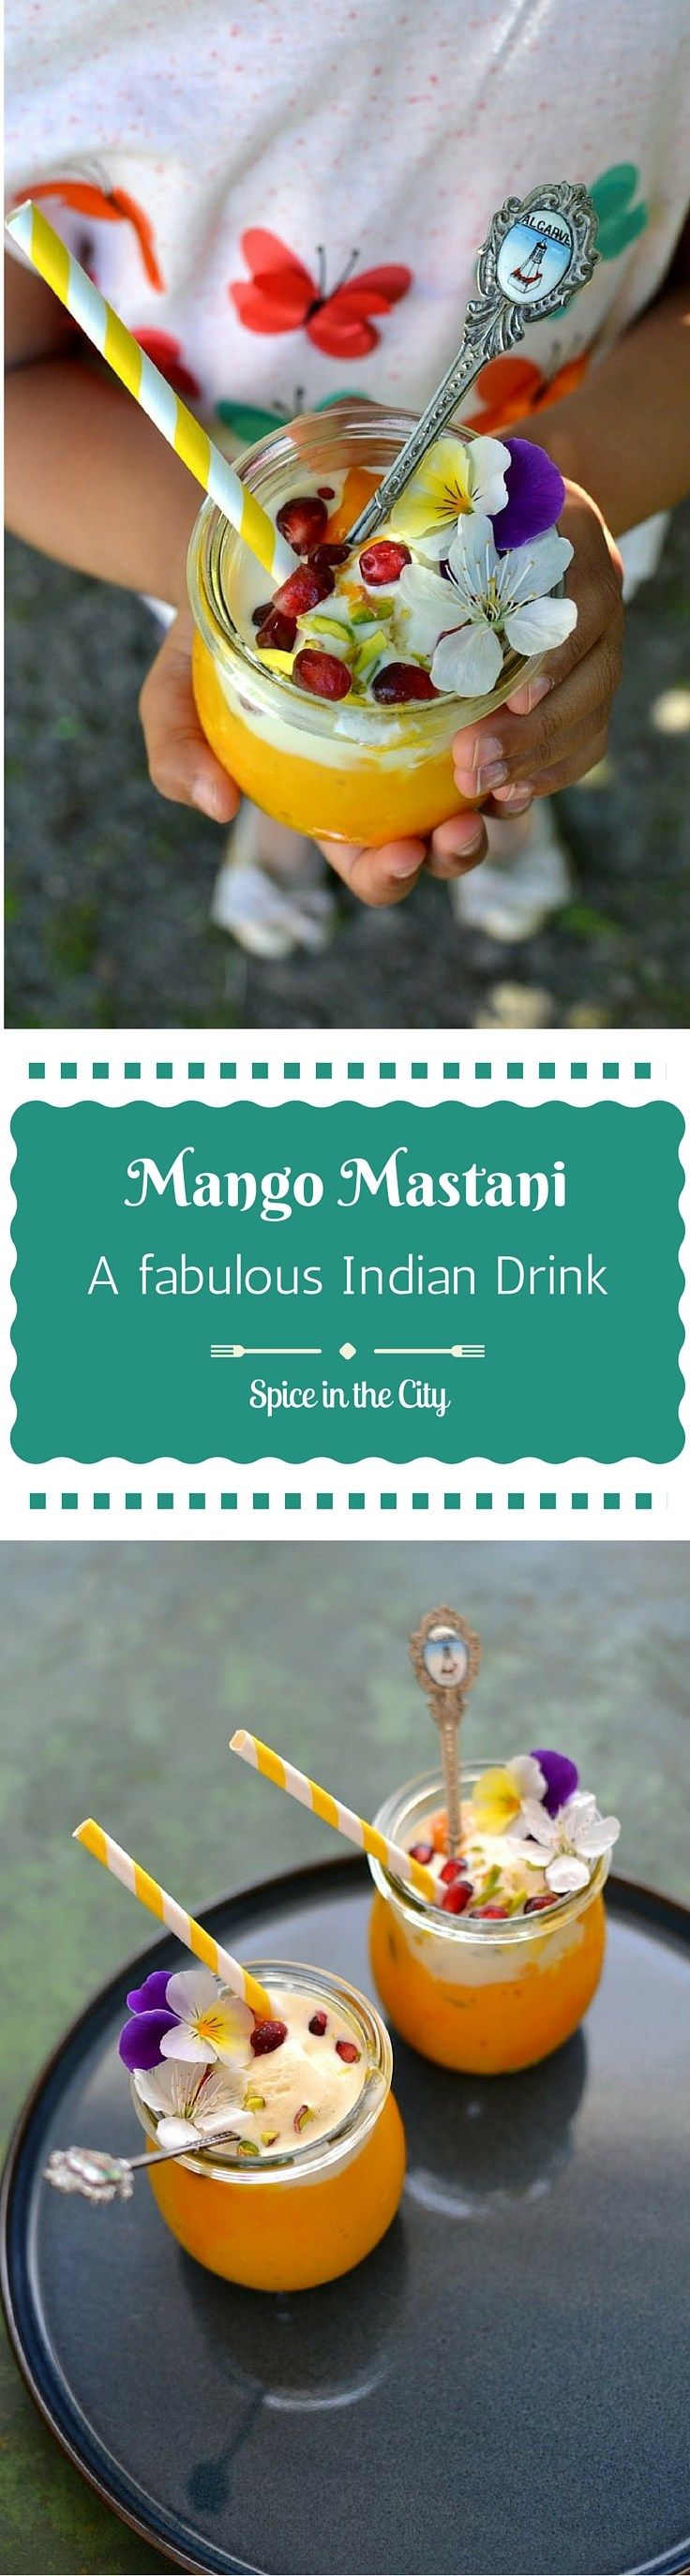 Mango Mastani: A fabulous, decadent & gorgeous Mango drink named after a legendary beauty from Western India! It is the perfect refreshmentfor an Indian Summer | Spice in the City